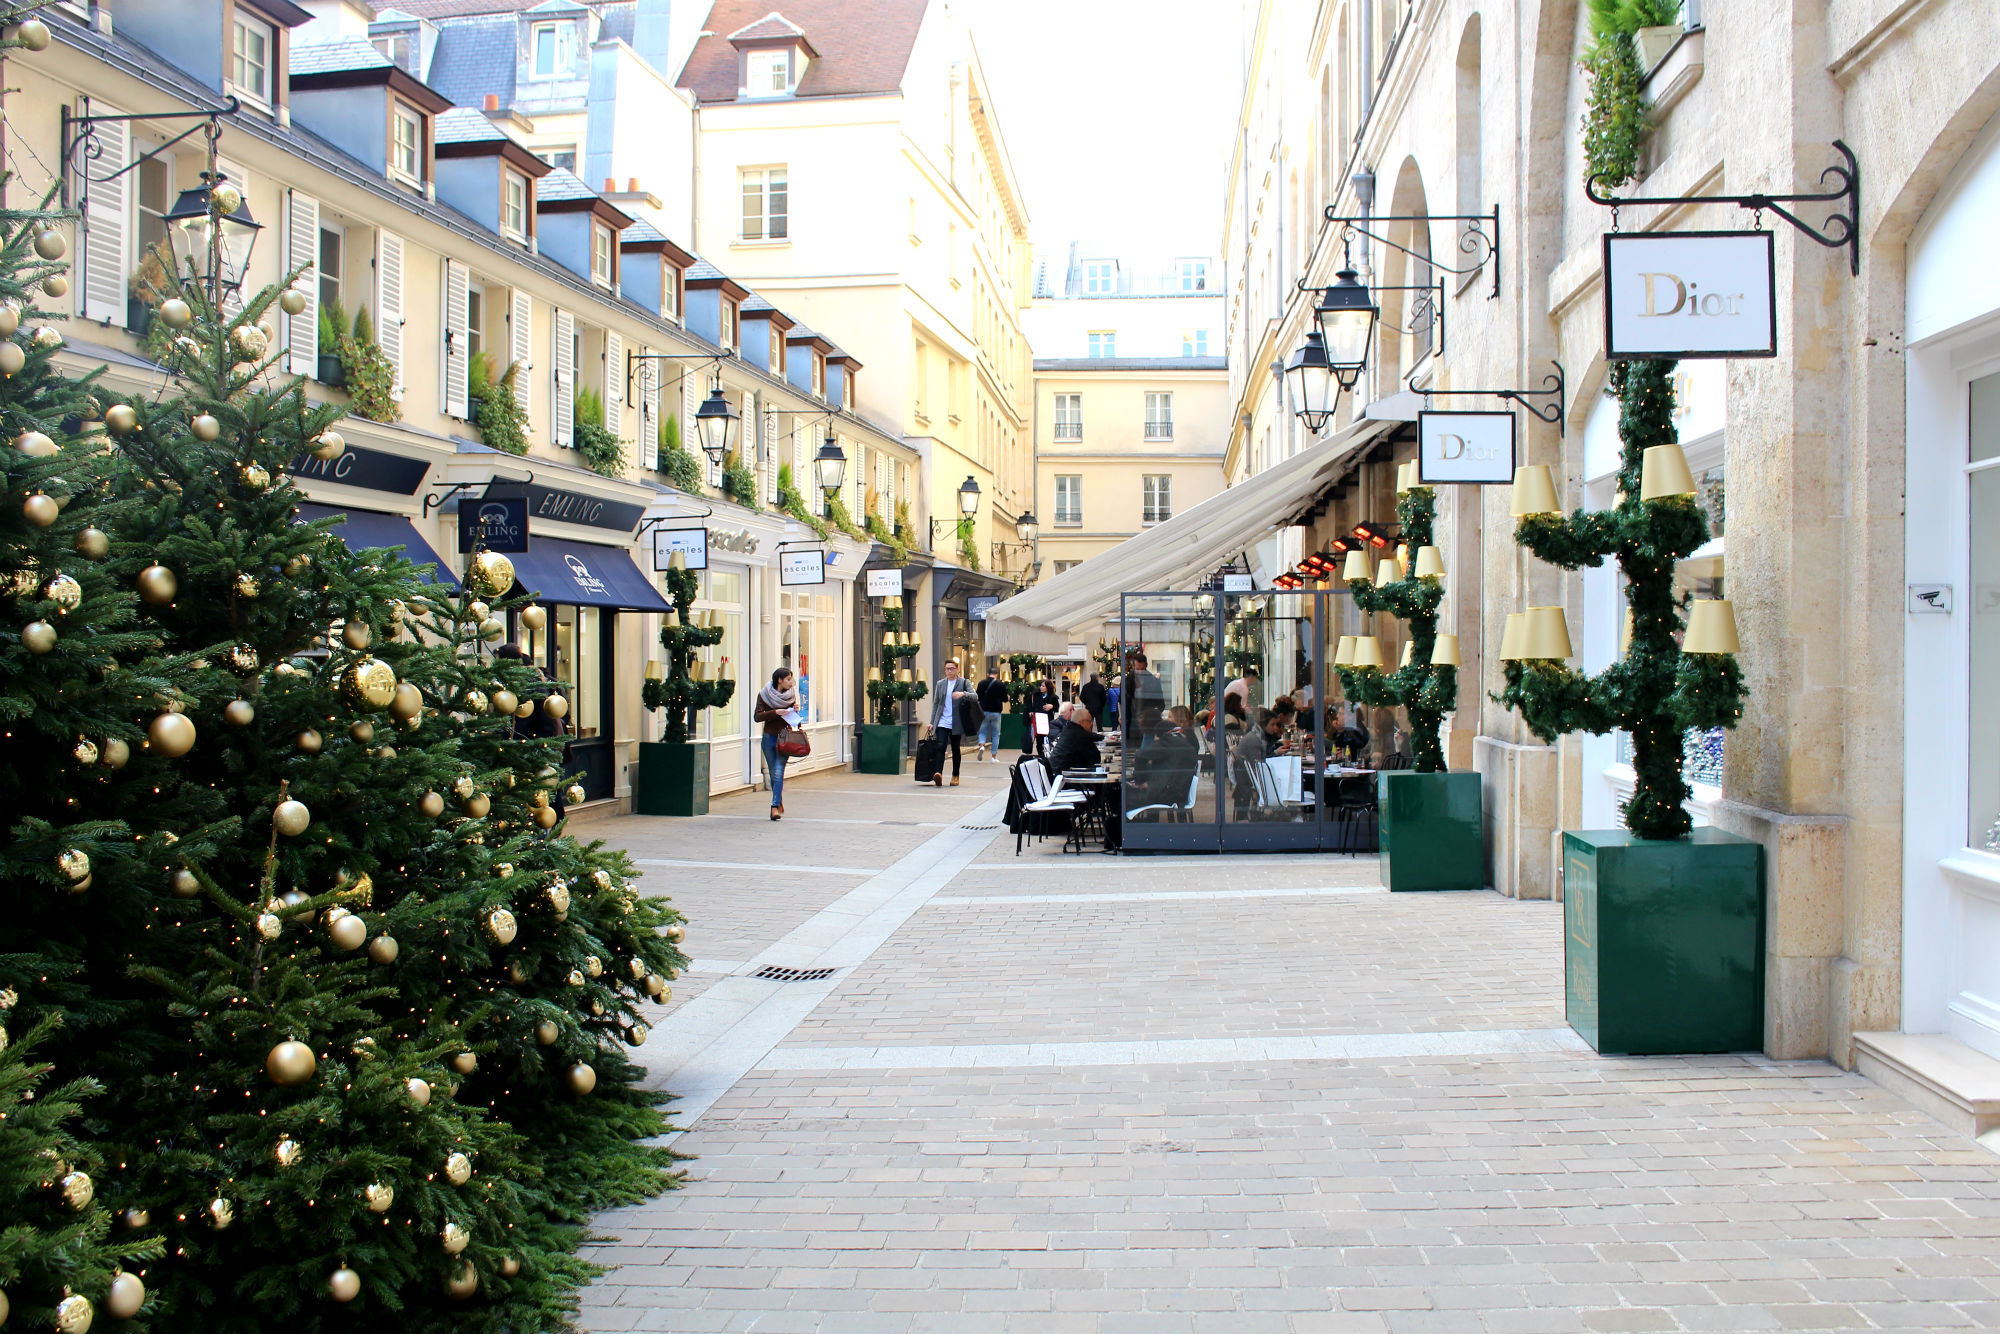 hristmas 2015, Village Royale Paris. Holidays in Paris are so beautiful.